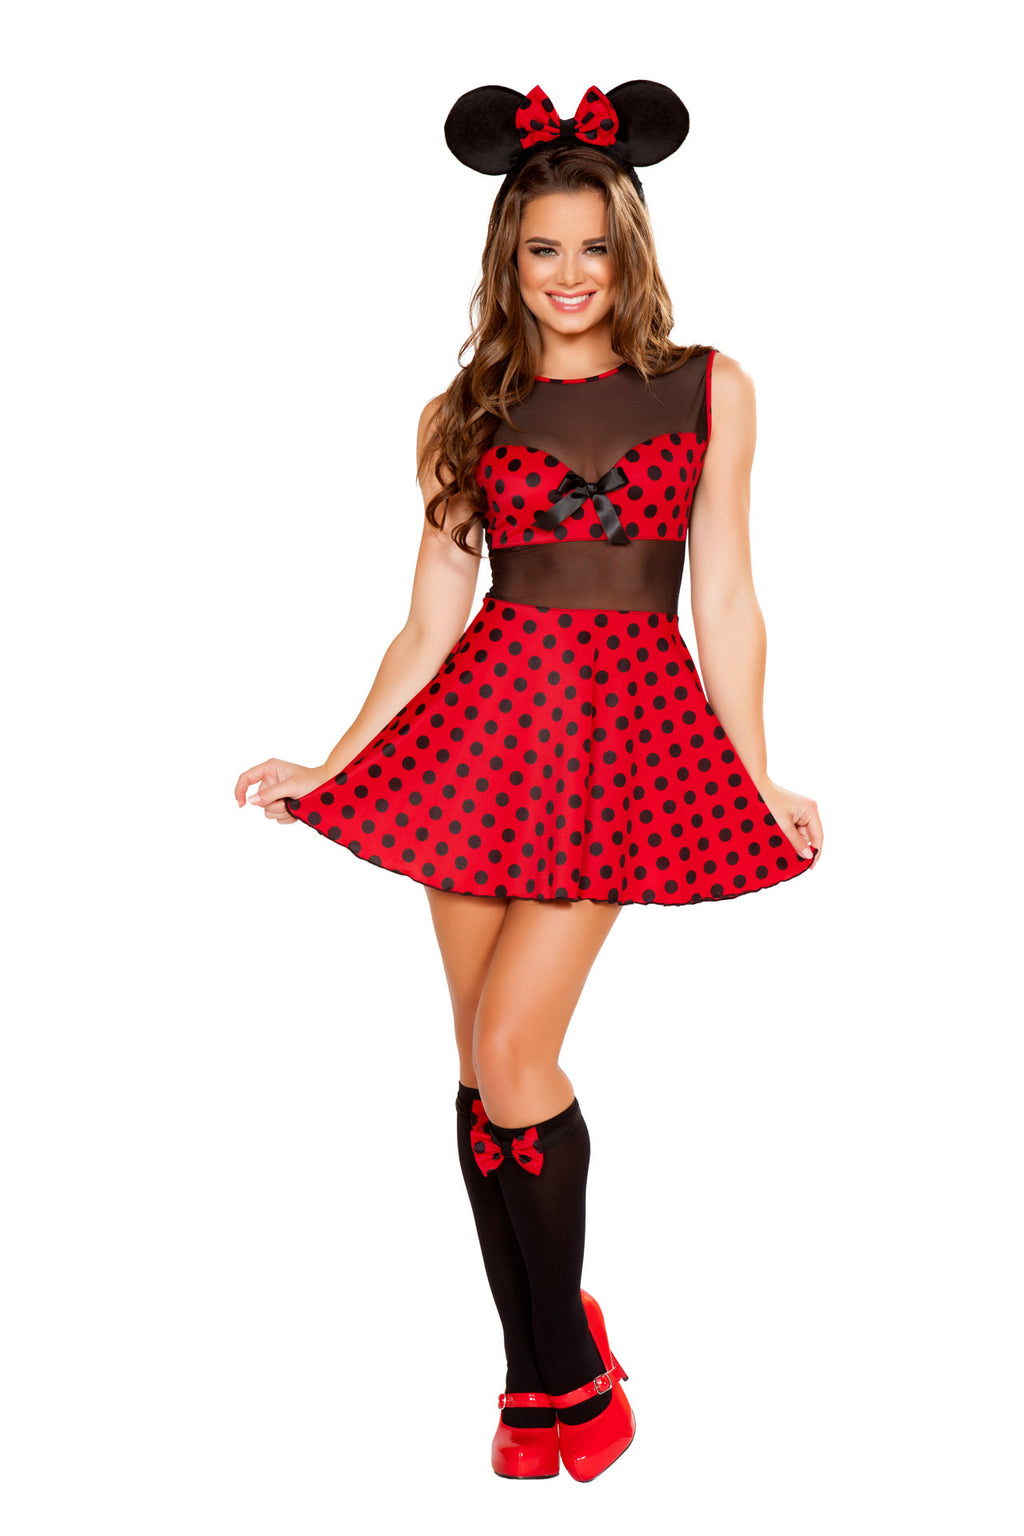 2-PC-Miss-Mouse-Red-&-Black-Polka-Dot-Dress-w/-Headband-Ears-Party-Costume